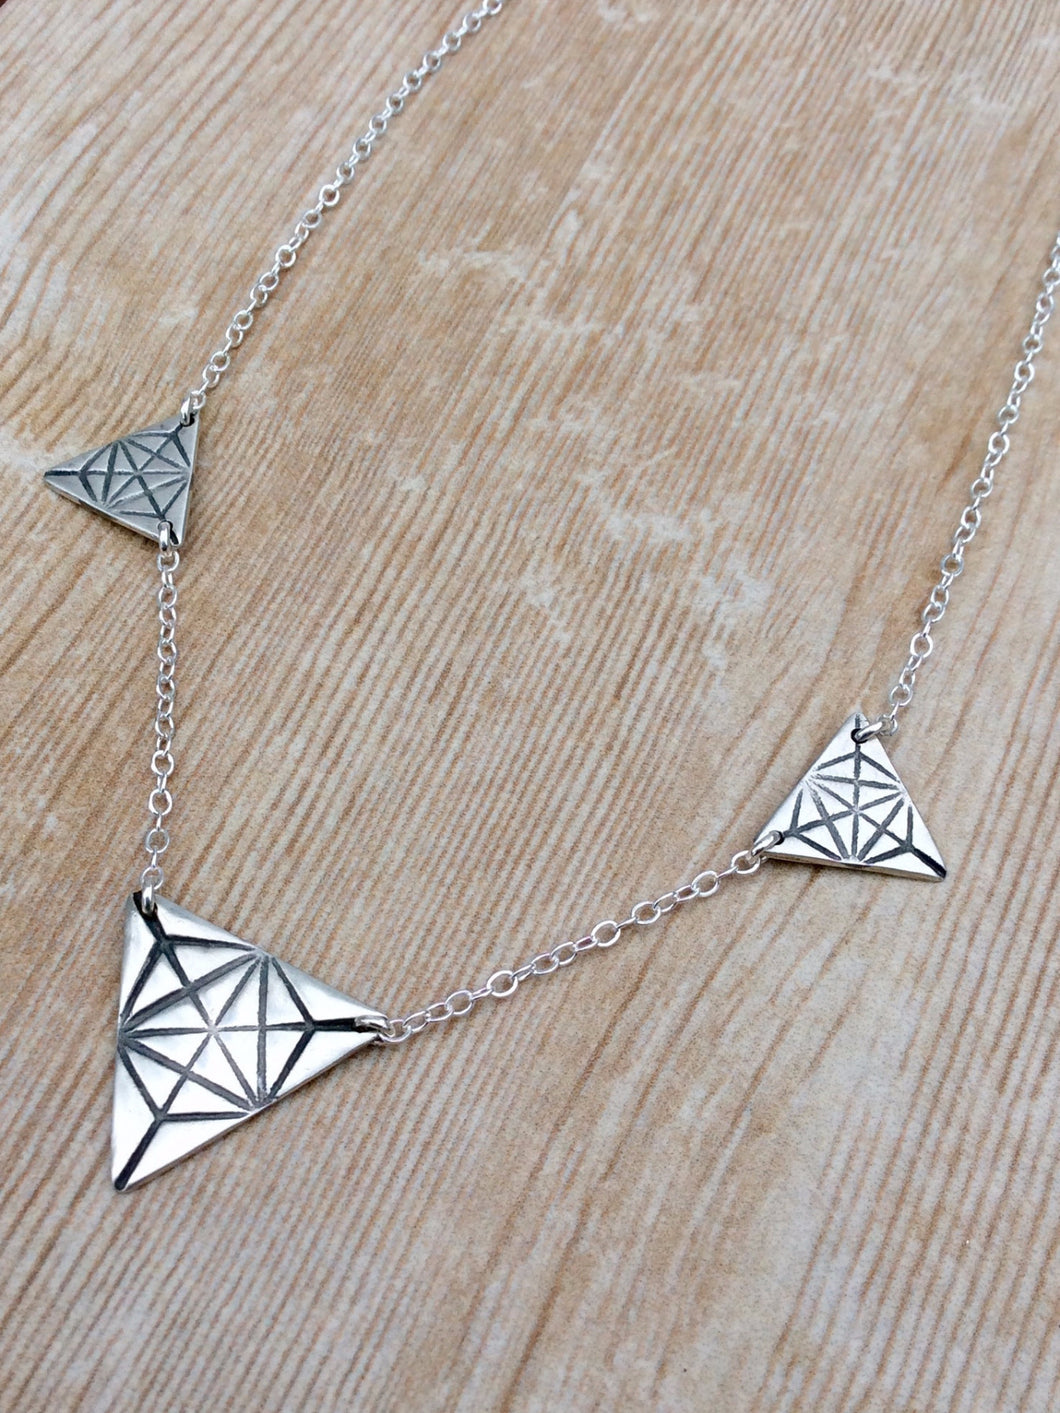 Large Triple Triangle Merkaba Necklace